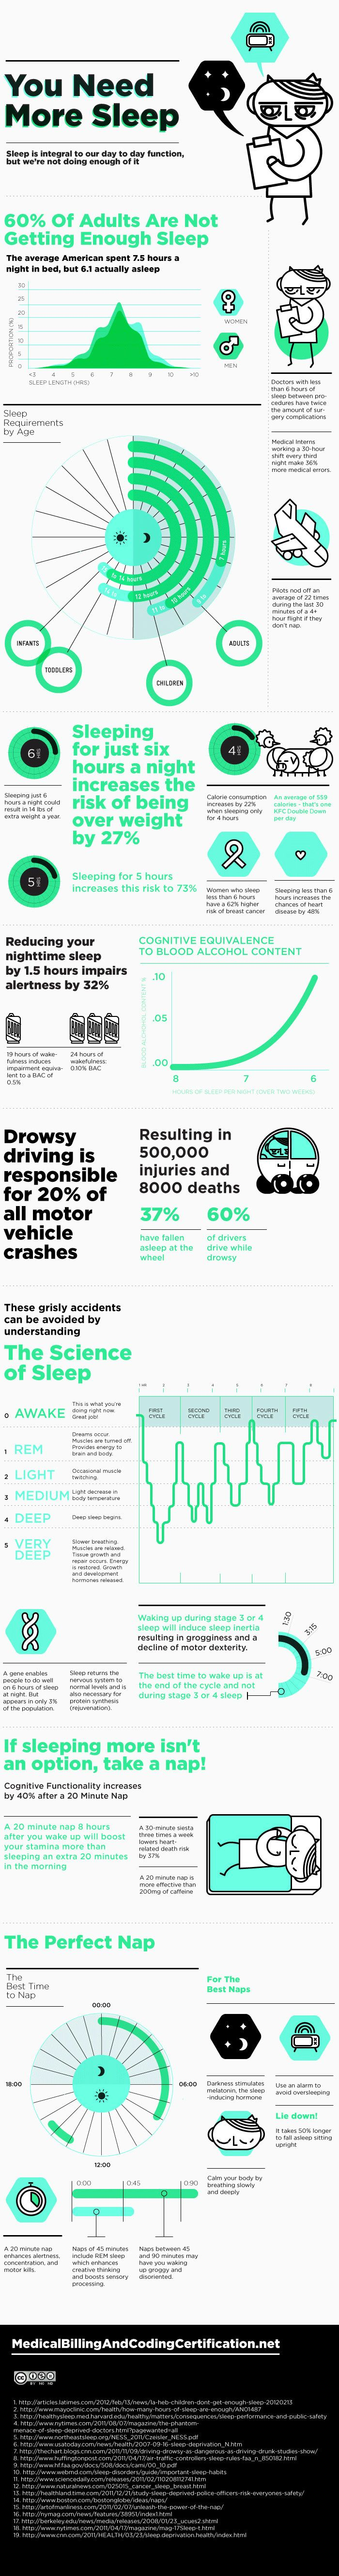 Sleep is the most important thing you can do for your overall health as this infographic illustrates. (Created by MedicalBillingandCodingCertification.net)